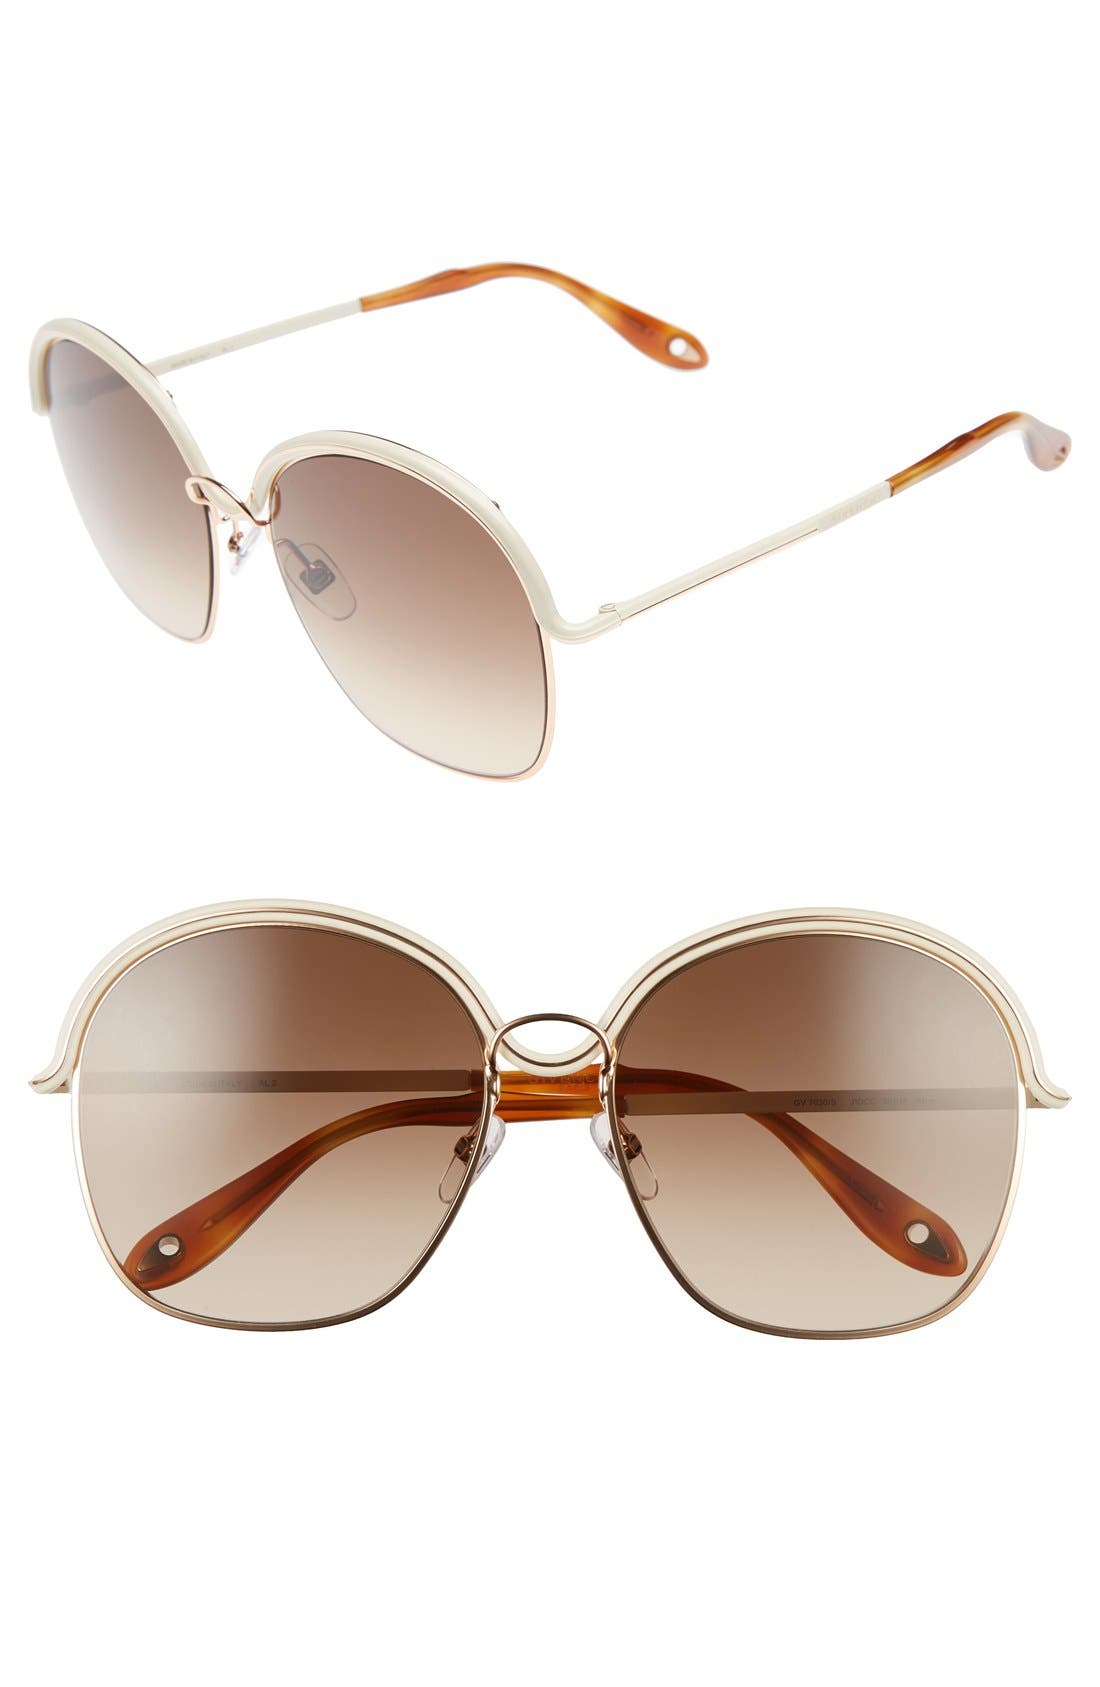 Alternate Image 1 Selected - Givenchy 7030/S 58mm Oversized Sunglasses